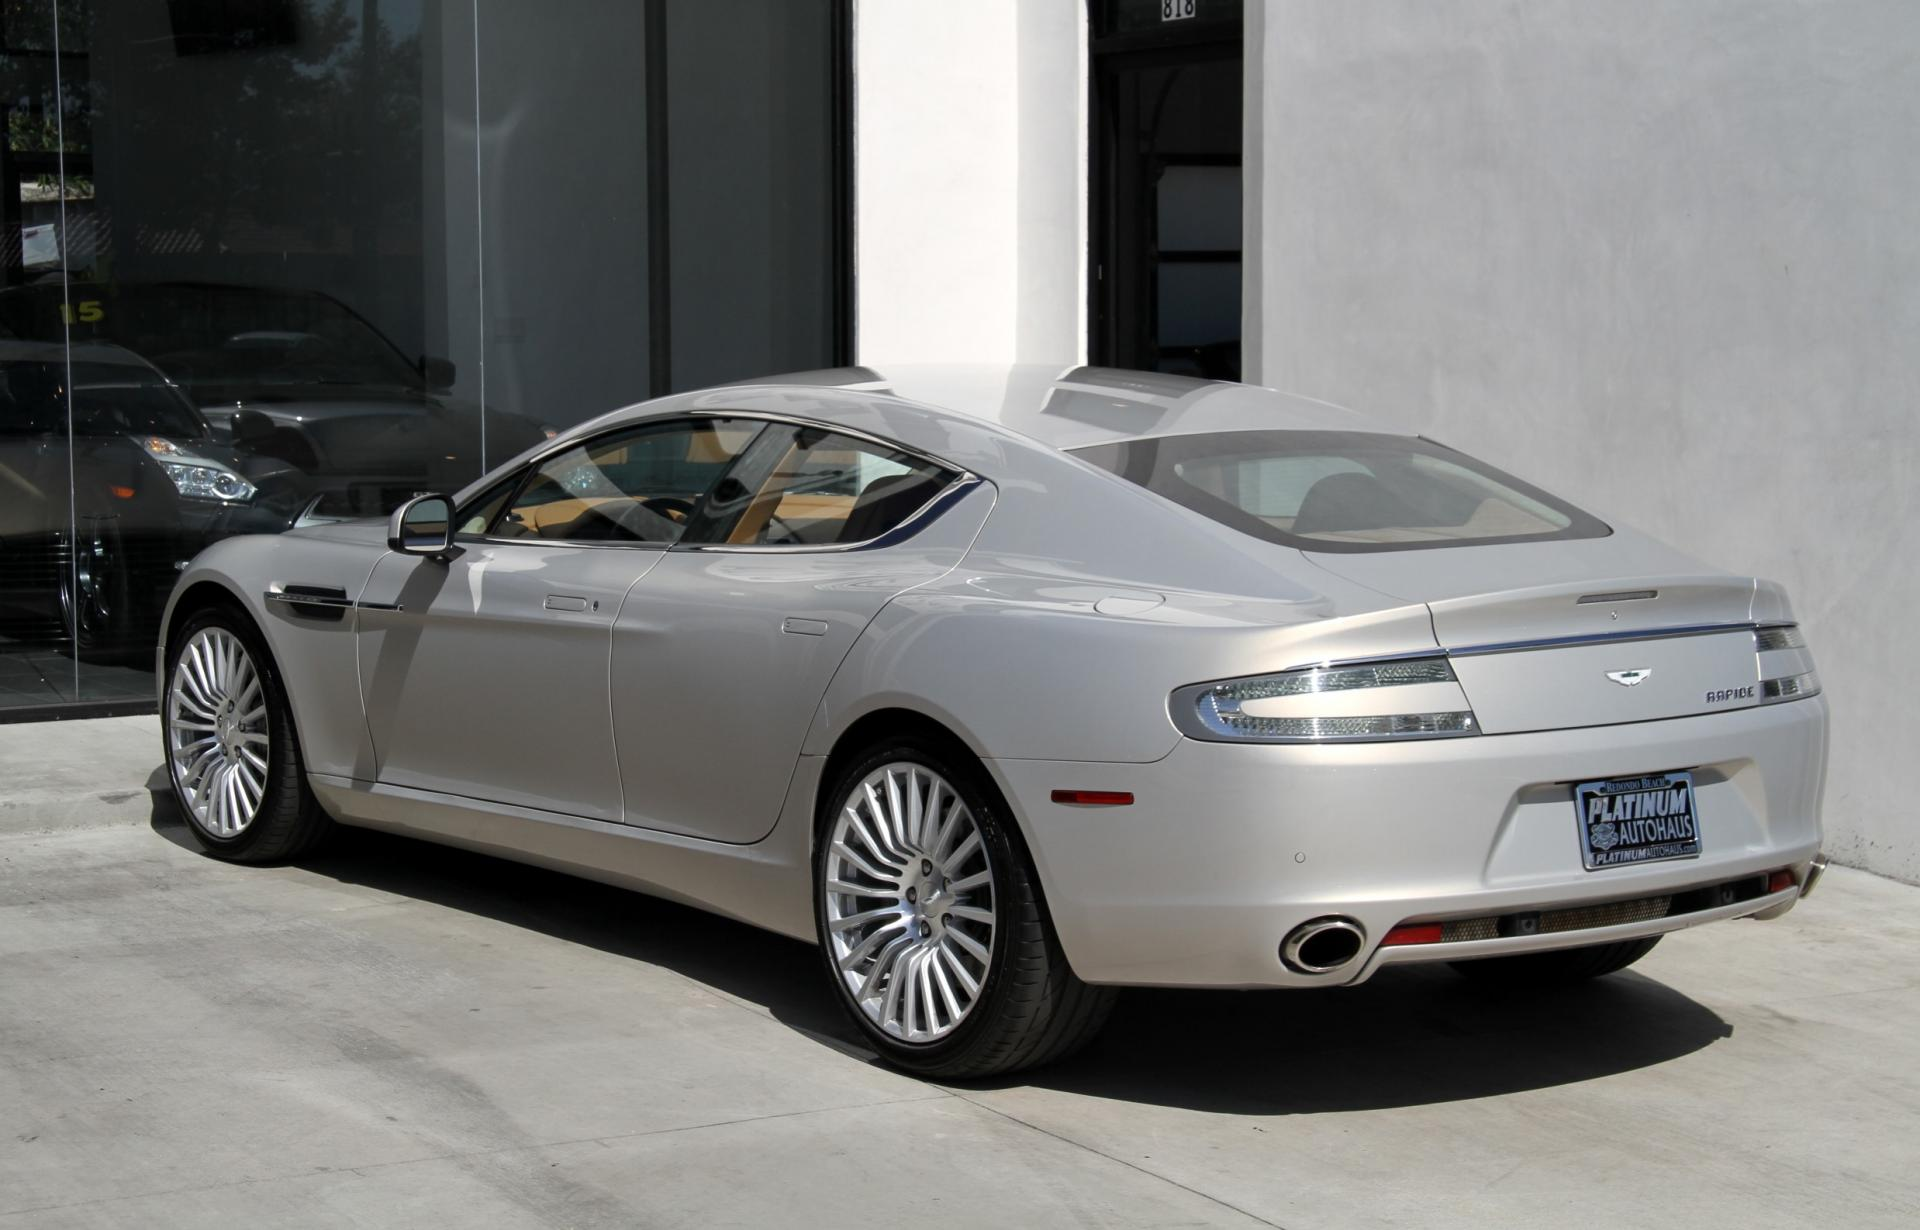 2011 Aston Martin Rapide Stock # 5993 For Sale Near